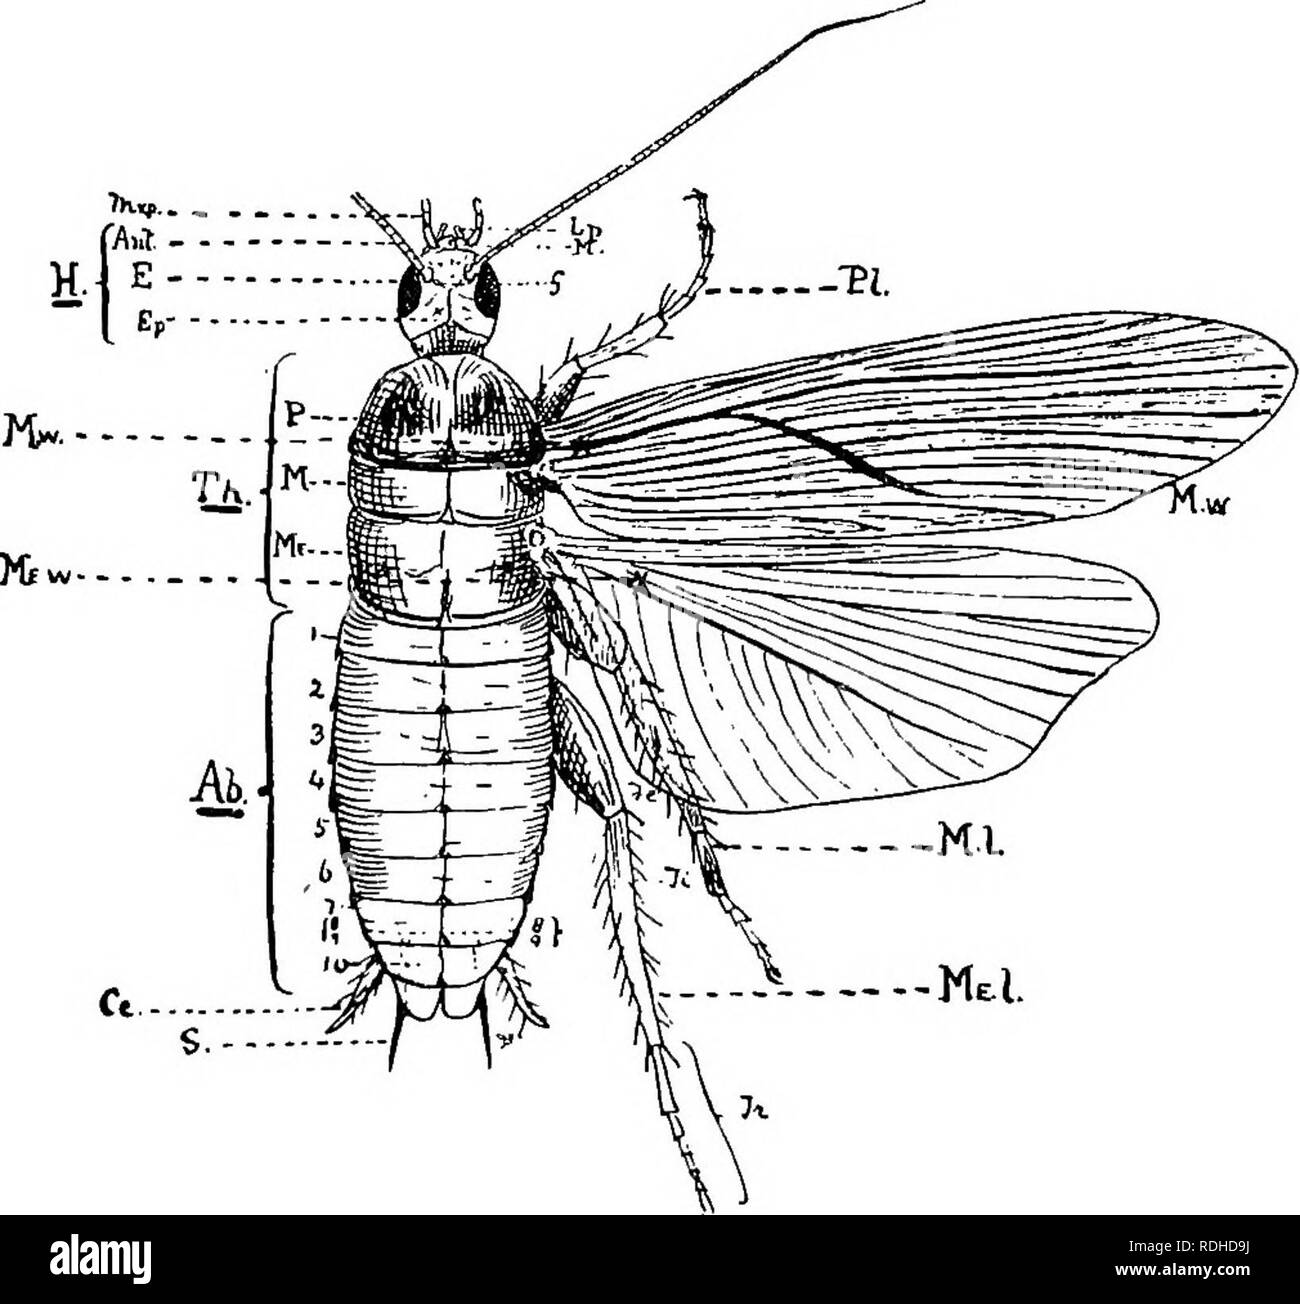 """. A text-book of agricultural zoology. Zoology, Economic. 90 ANATOMY OF AN AftTHEOPOD. 32 A, c), a broad plate, which is followed by a smaller plate united to the front of the clypeus, called the labrum or """"upper lip"""" {L). The plate on each side below and behind the eyes is called the gena or cheek (G). Ocelli are absent in this type, other- wise they would be situated on the epicranium. The thorax. Fig. 31.—Structure of an Arthropod {Periplaneta wmeHcarm). Hf head; Th, thorax; Ab, abdomen; Mxp, maxillary palps; Zp, labial palps; Jlf, maxillse; Antf antennae; E, eyes; Ep, epicranium; - Stock Image"""